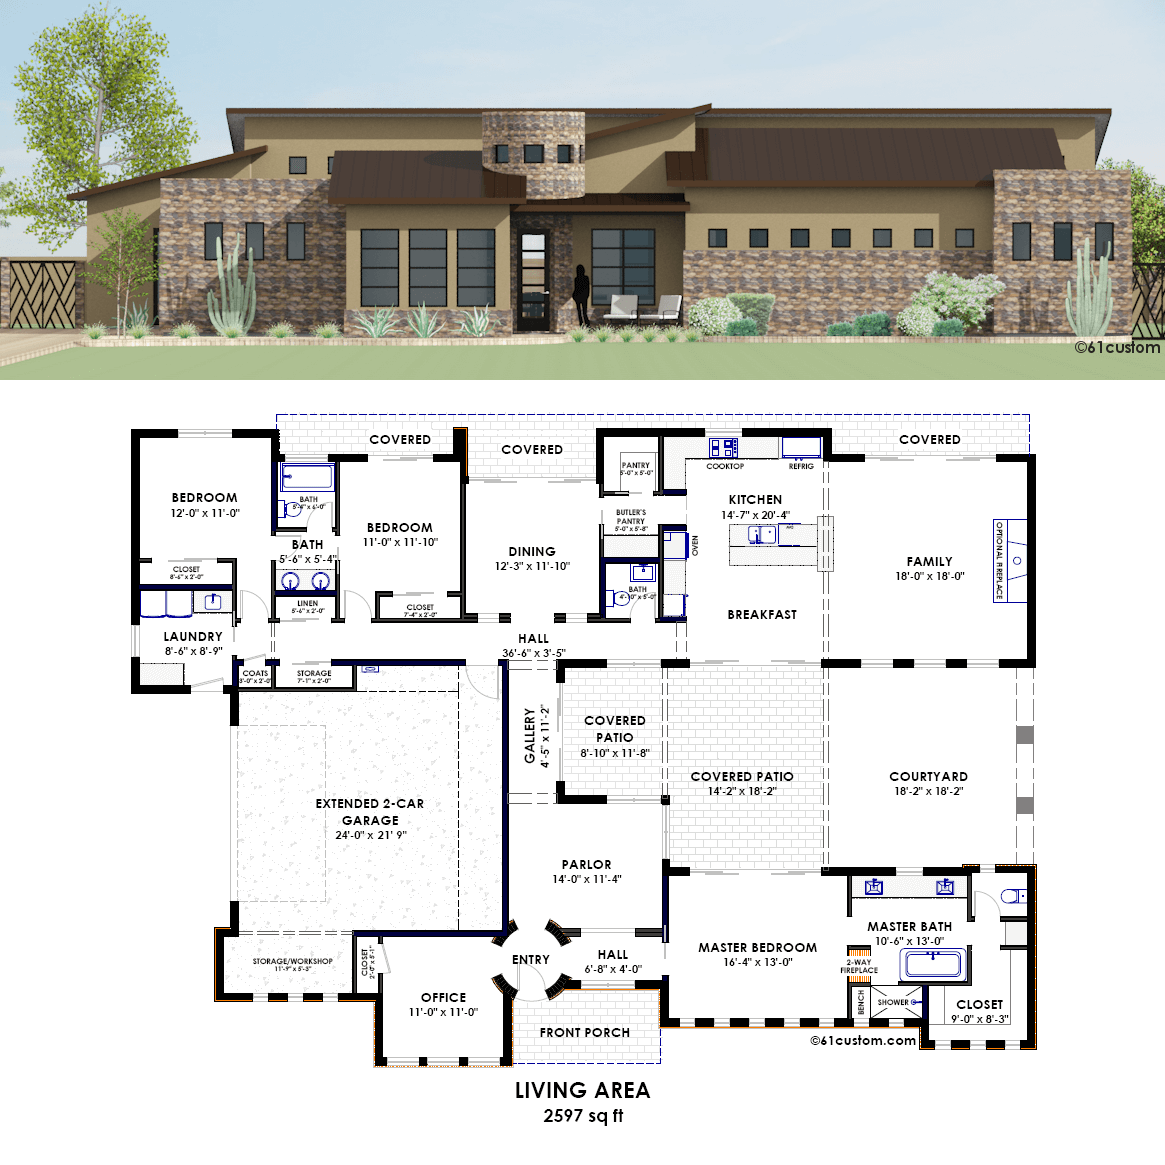 House plans and design contemporary house plans with Contemporary house blueprints